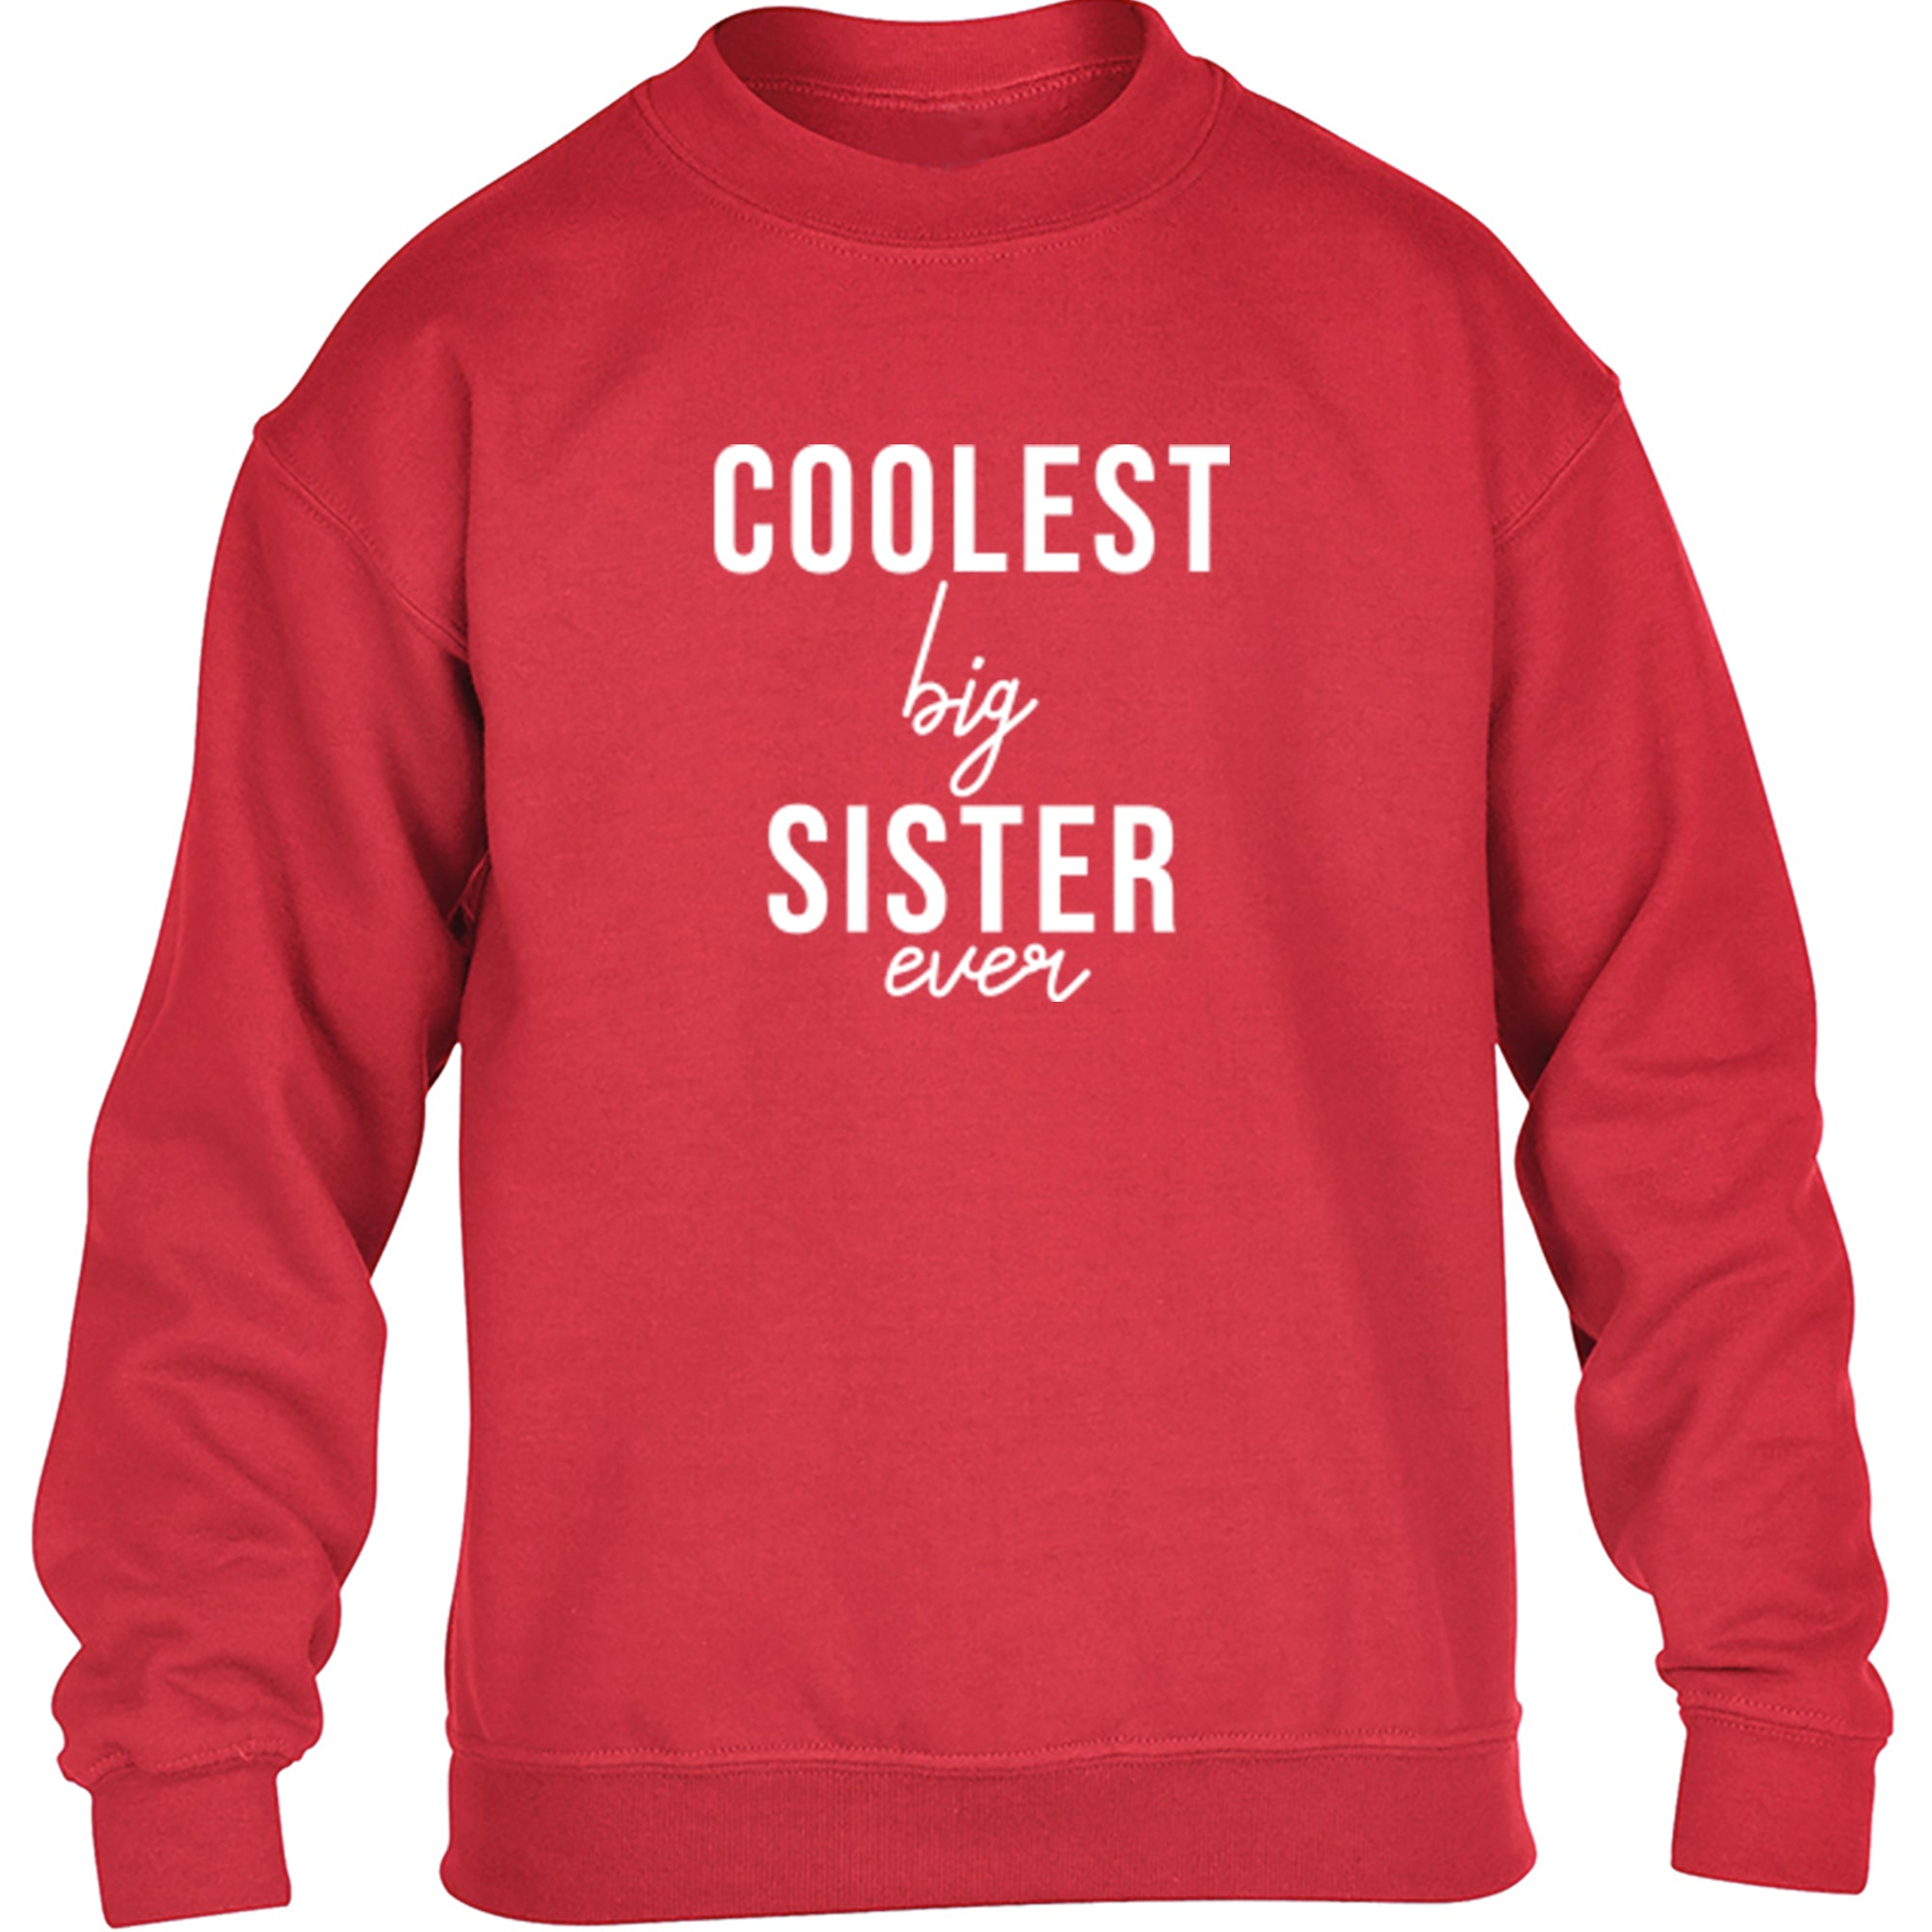 Coolest Big Sister Ever Childrens Ages 3/4-12/14 Unisex Jumper S0511 - Illustrated Identity Ltd.